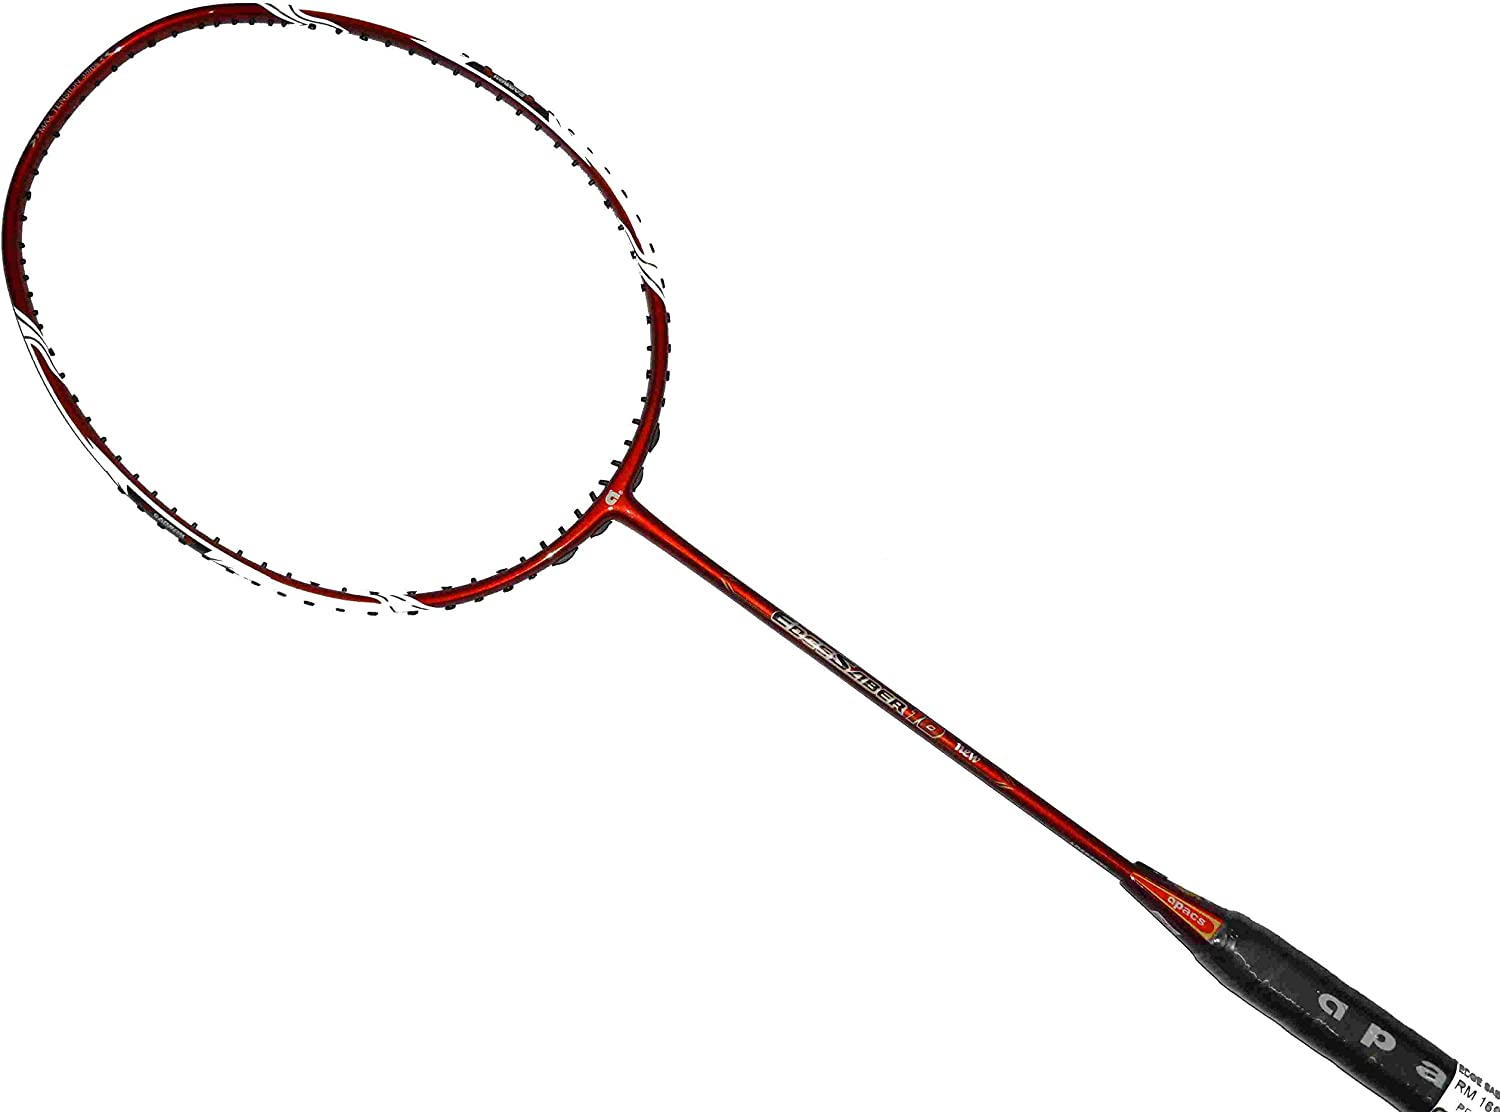 Apacs Edgesaber 10 Red New Badminton Racket Without Cover